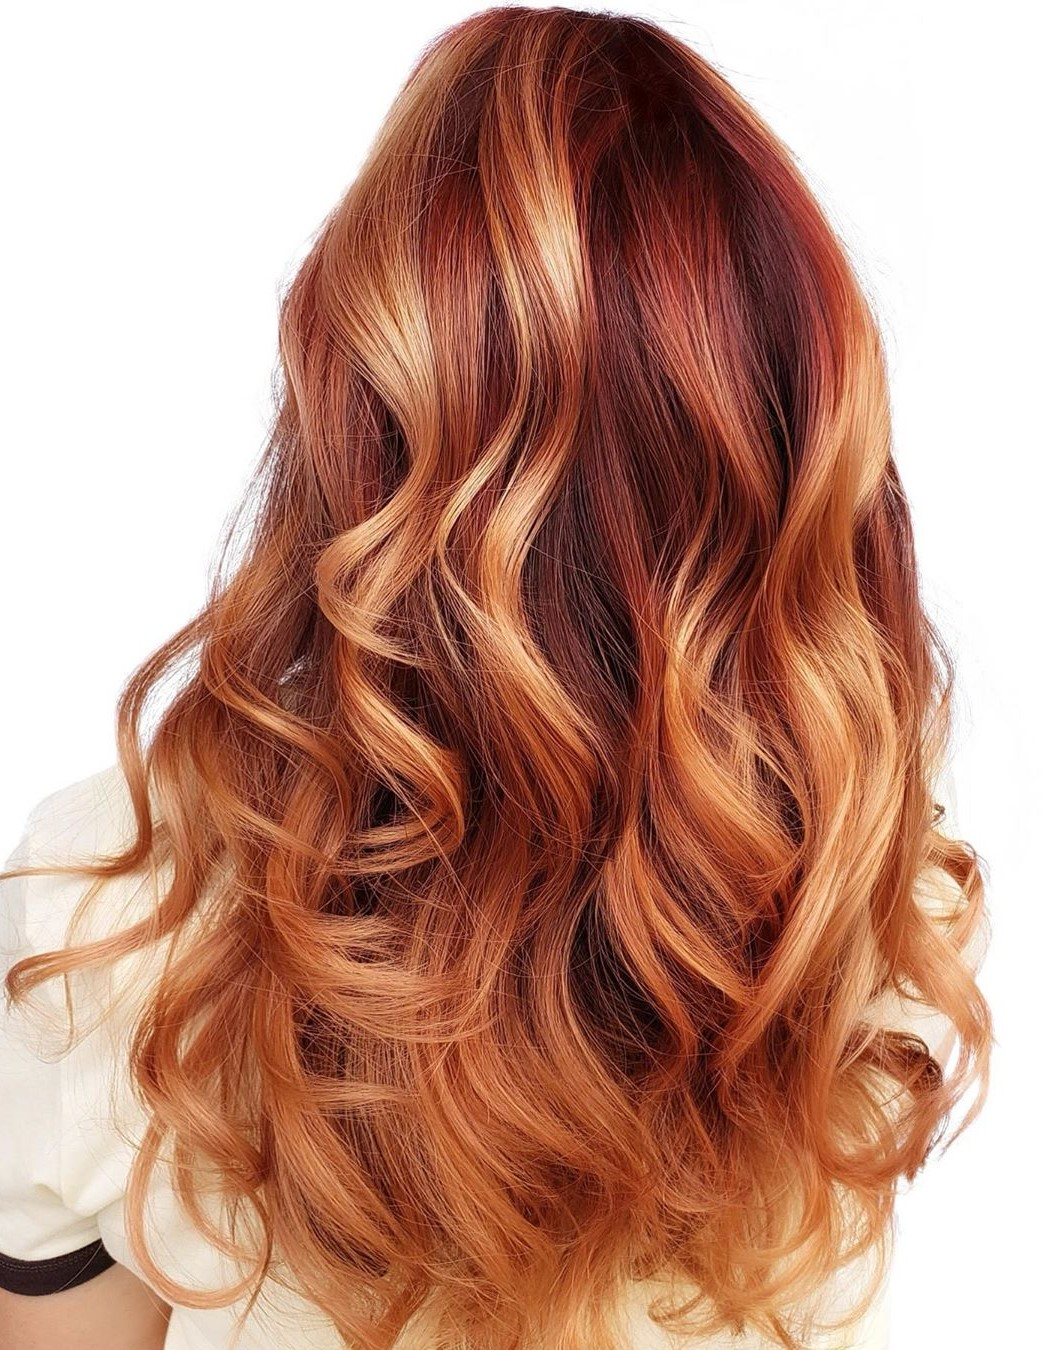 Strawberry Blonde Hair with Red Roots